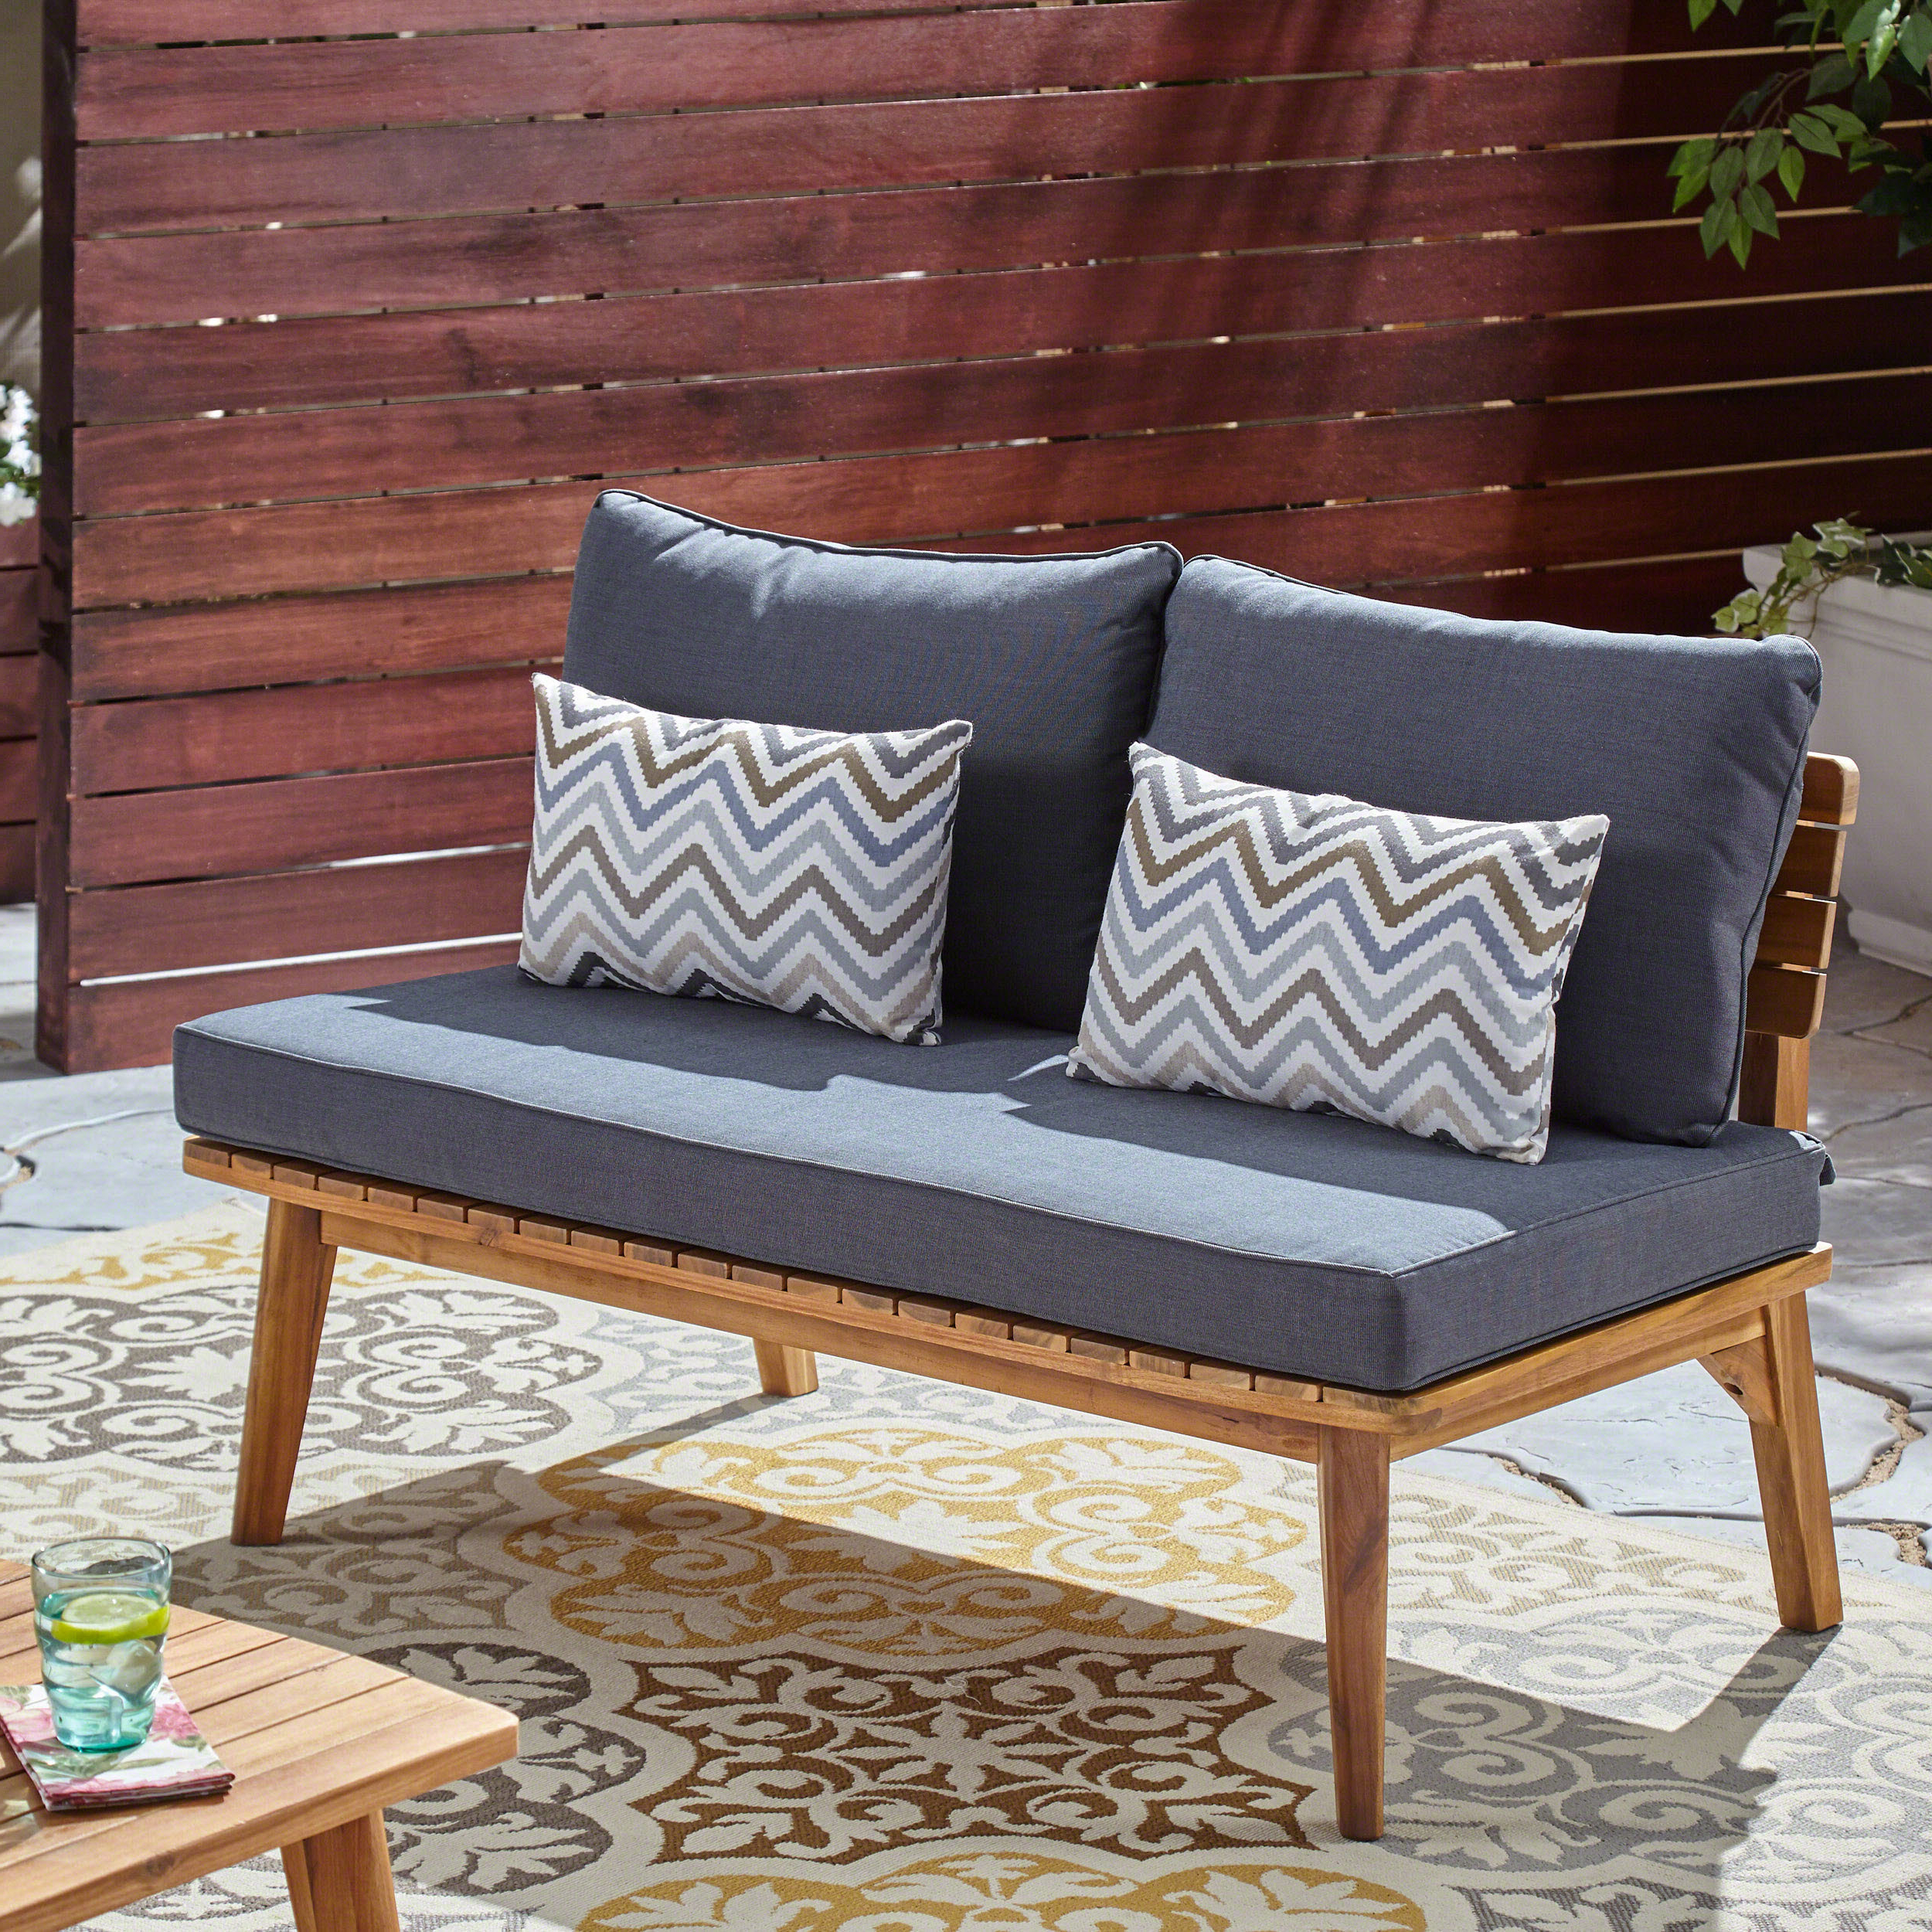 Englewood Loveseats With Cushions Inside 2019 Eller Loveseat With Cushions (View 7 of 20)